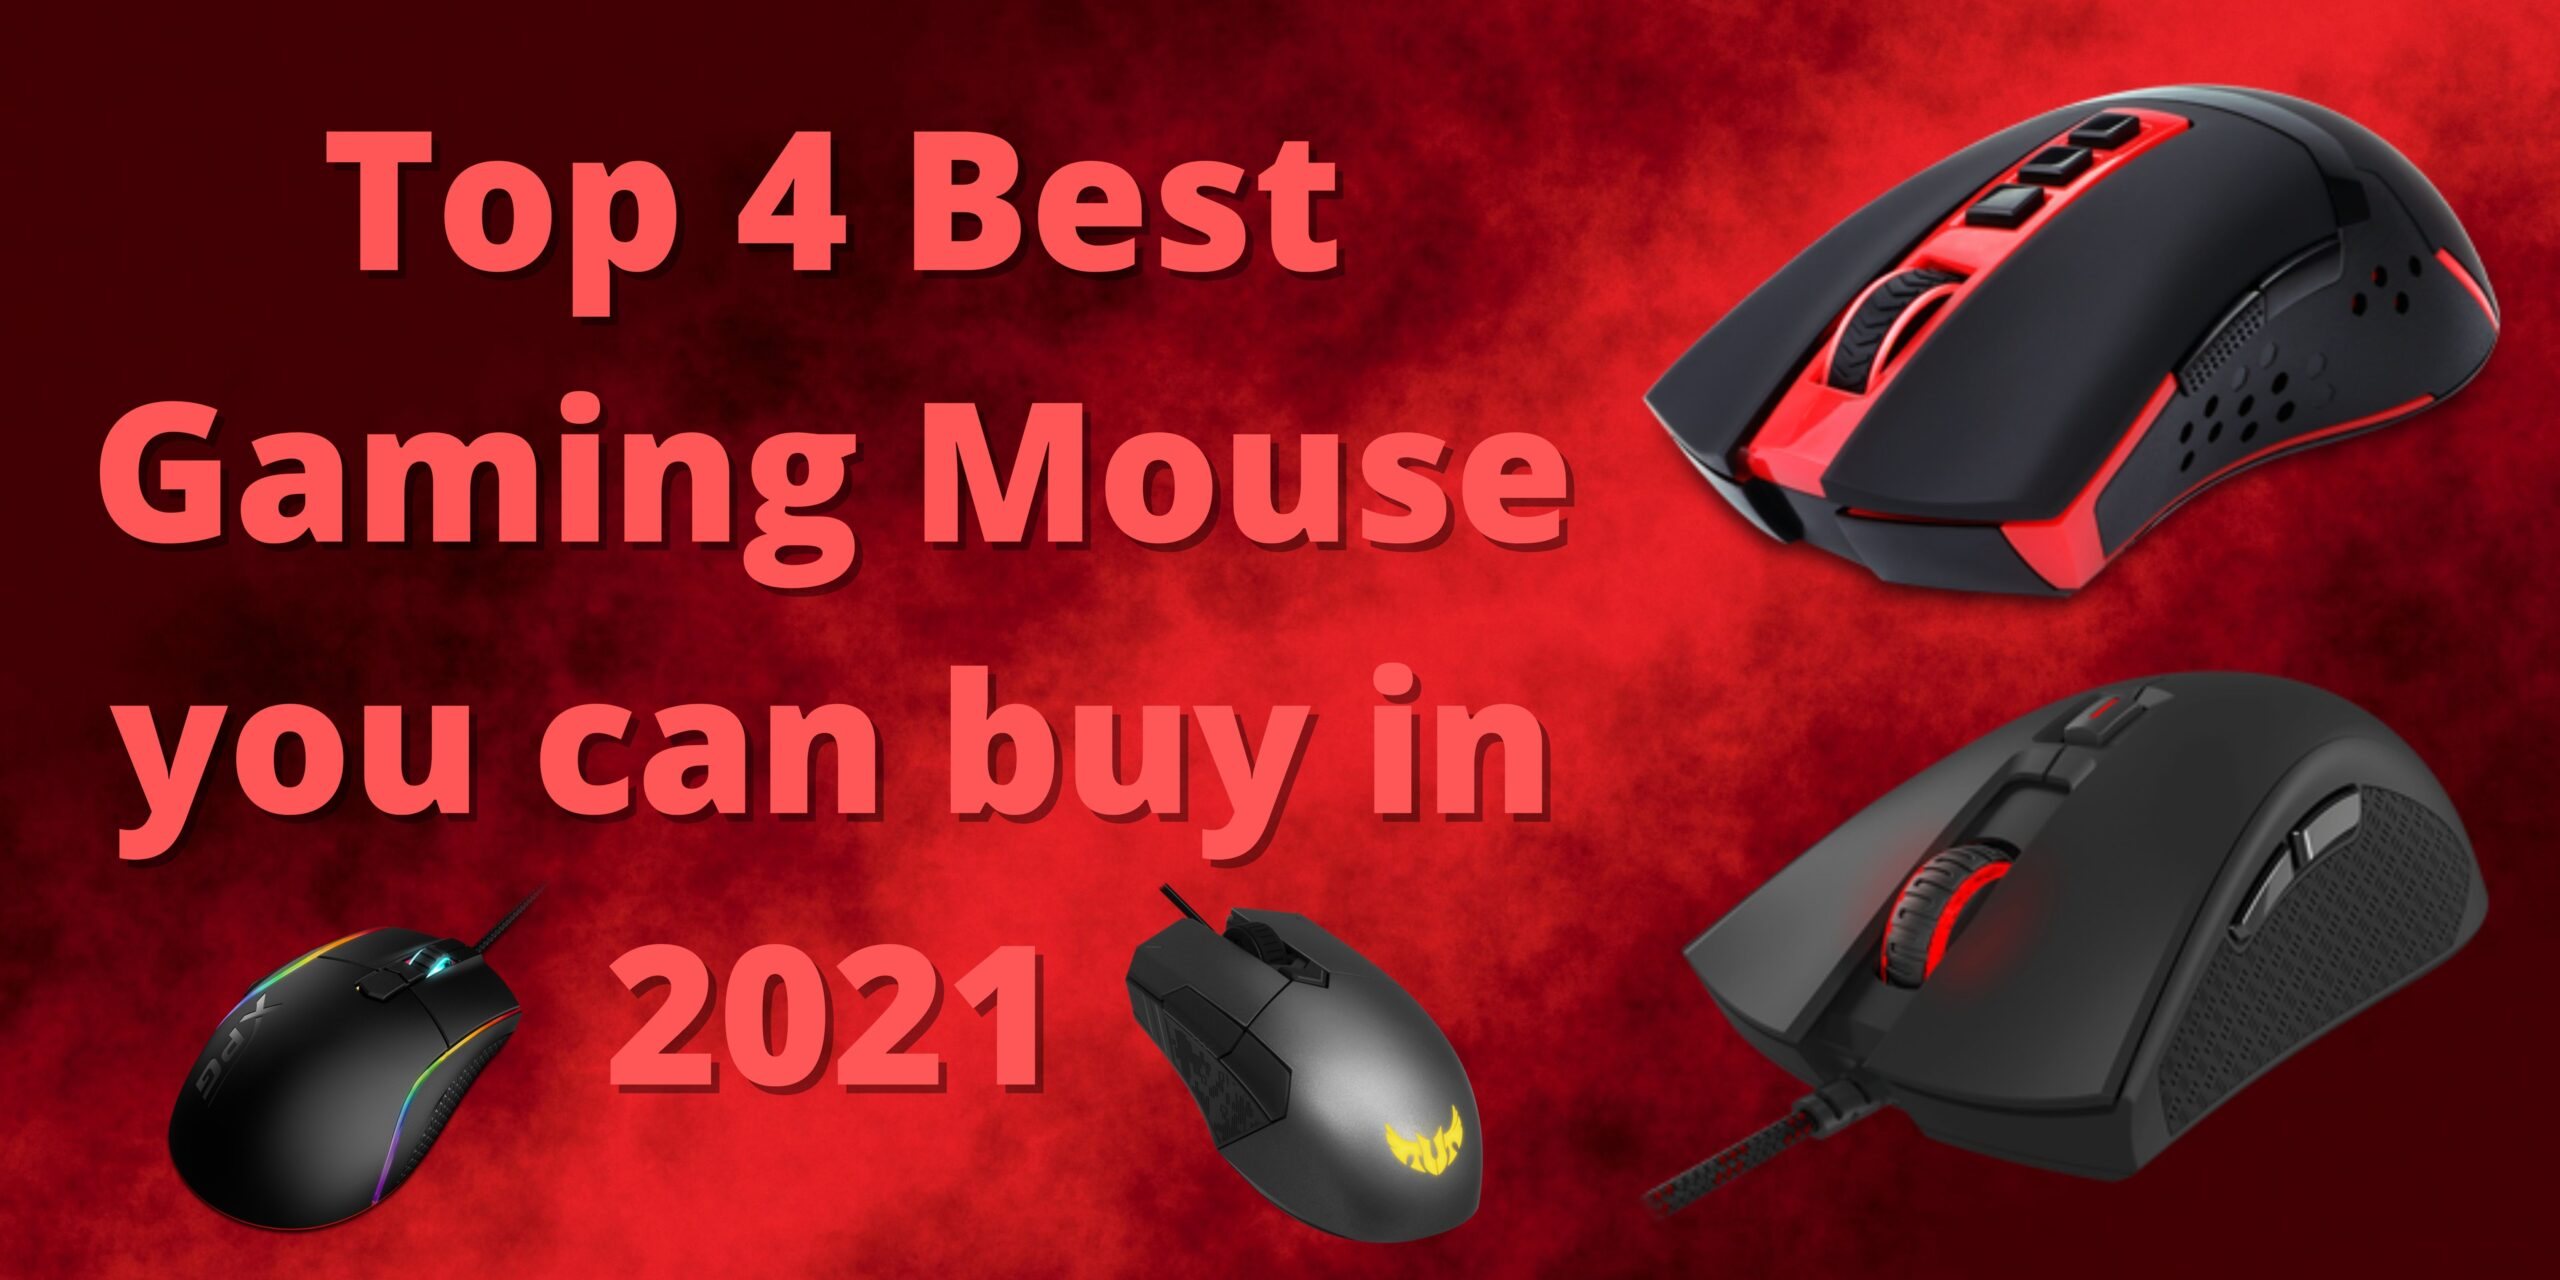 Top 4 Best Gaming Mouse